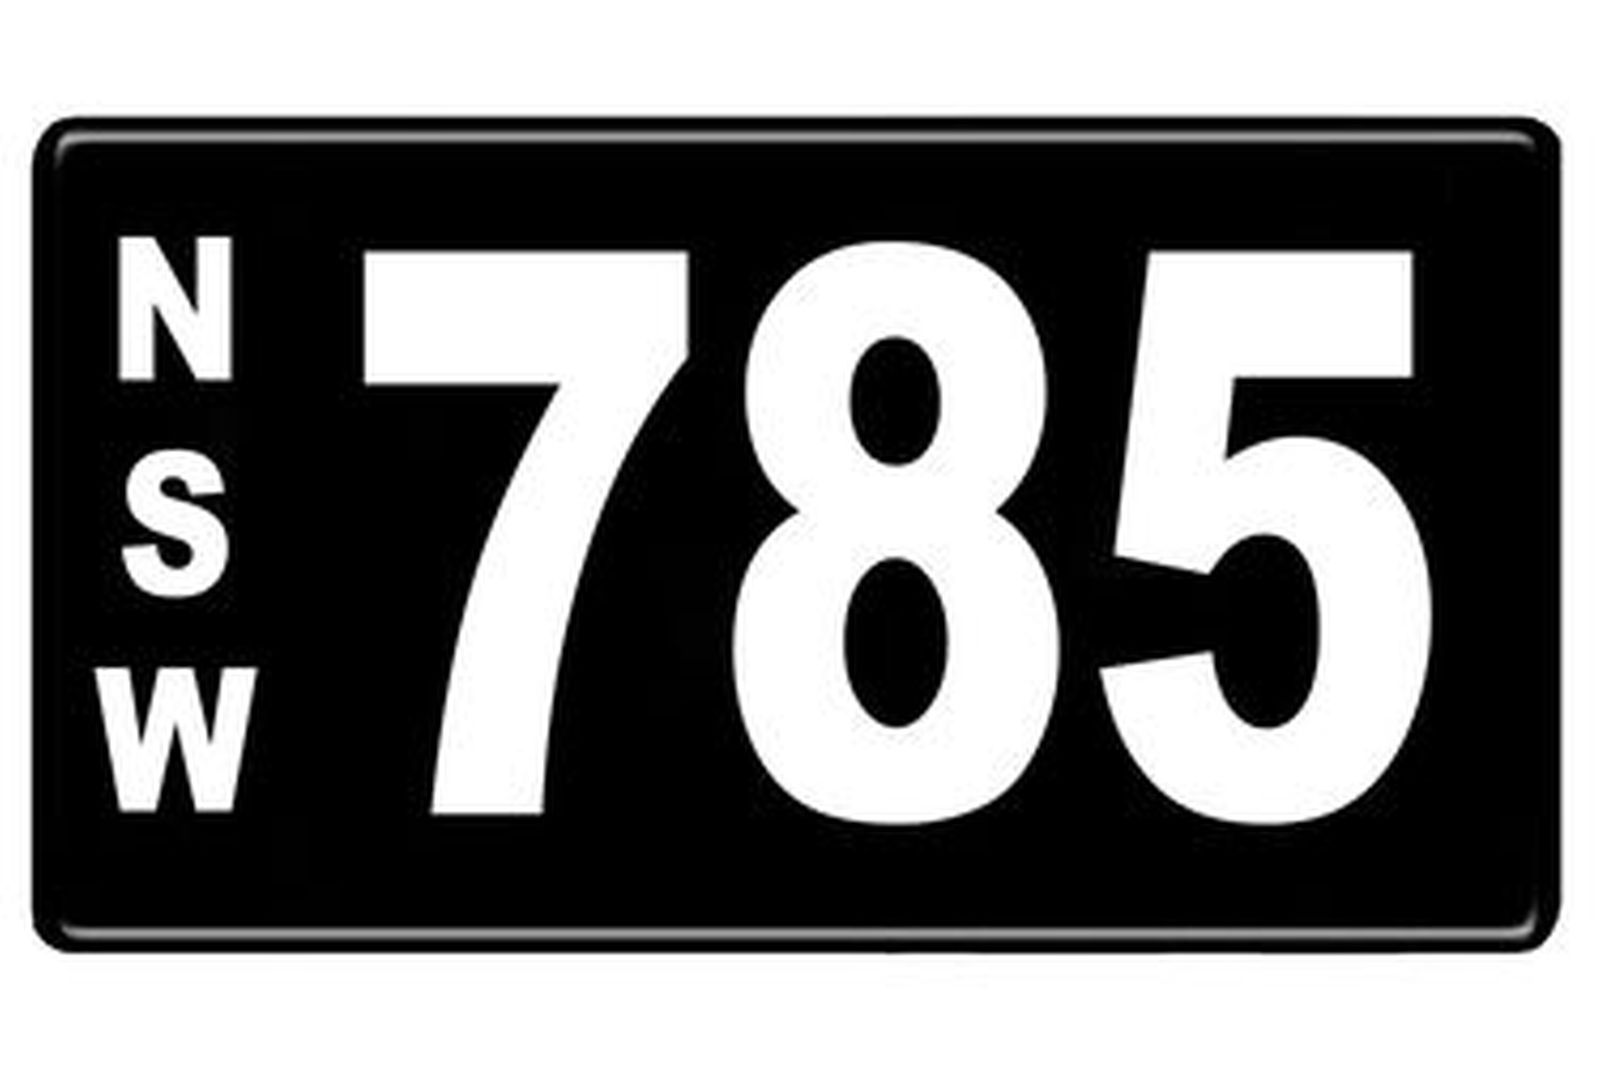 Number Plates - NSW Numerical Number Plates '785'